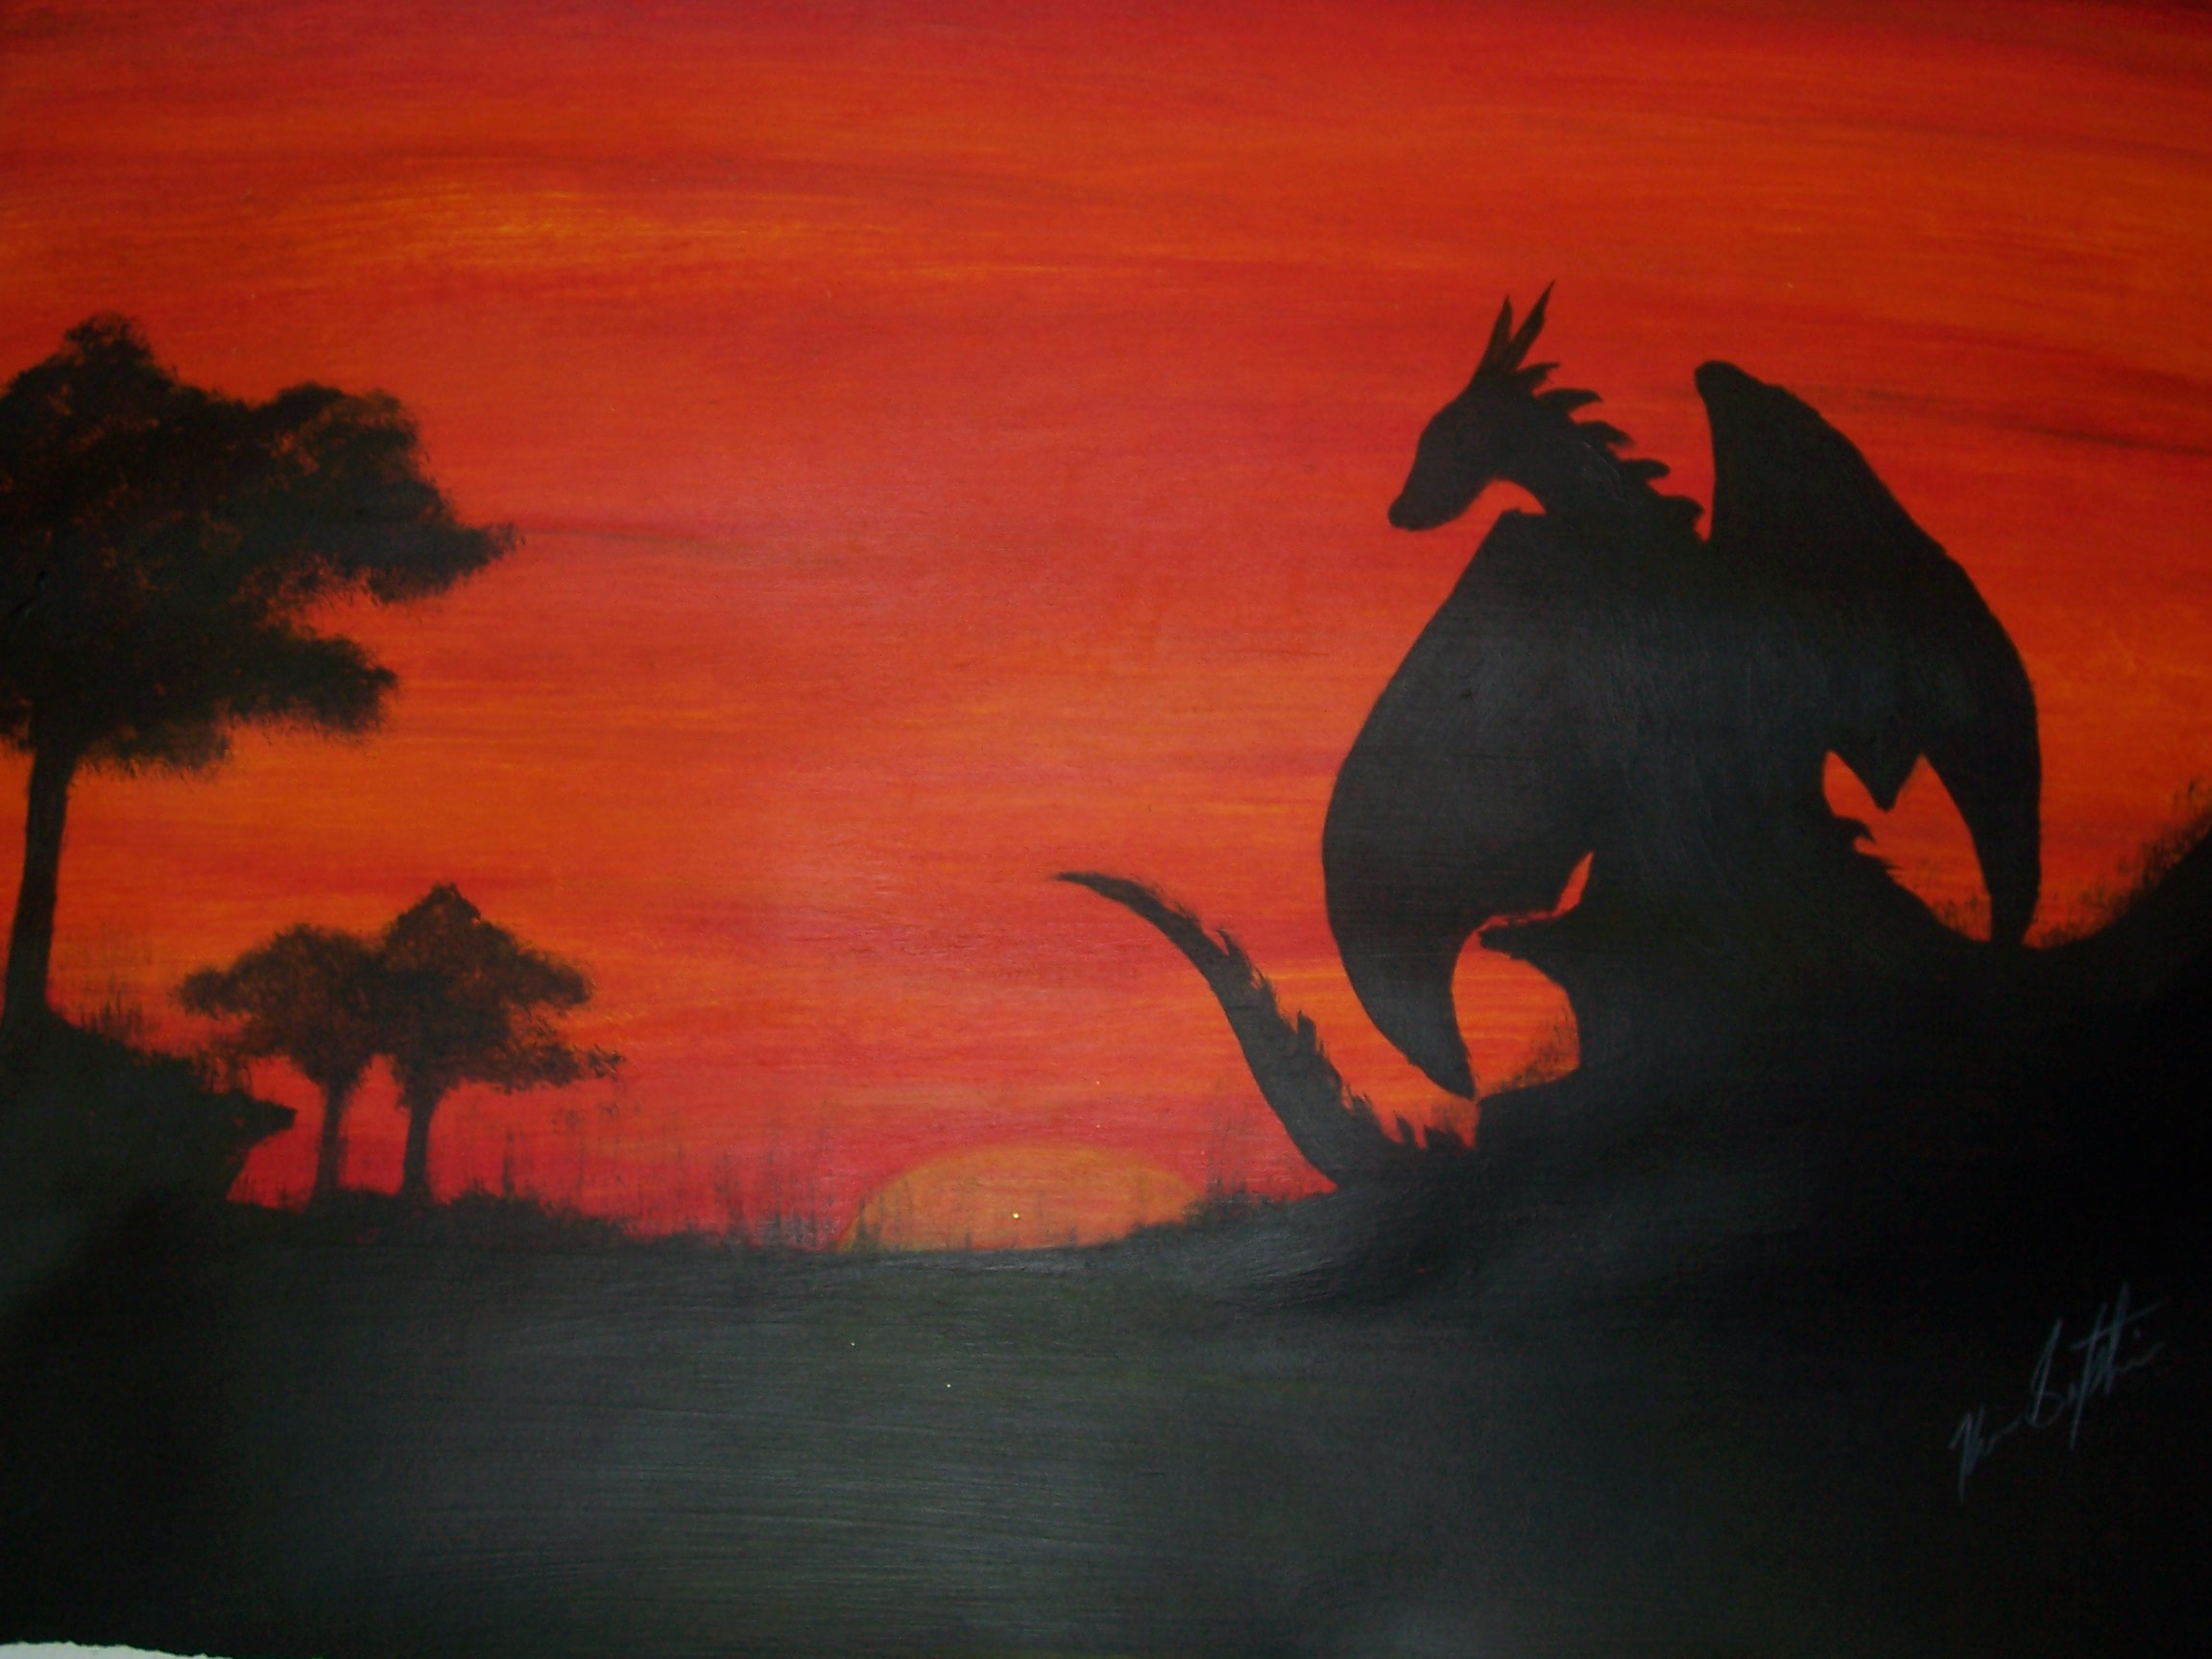 Dragon and sunset -1080p- by xTernal7 on DeviantArt |Dragons And Sunsets